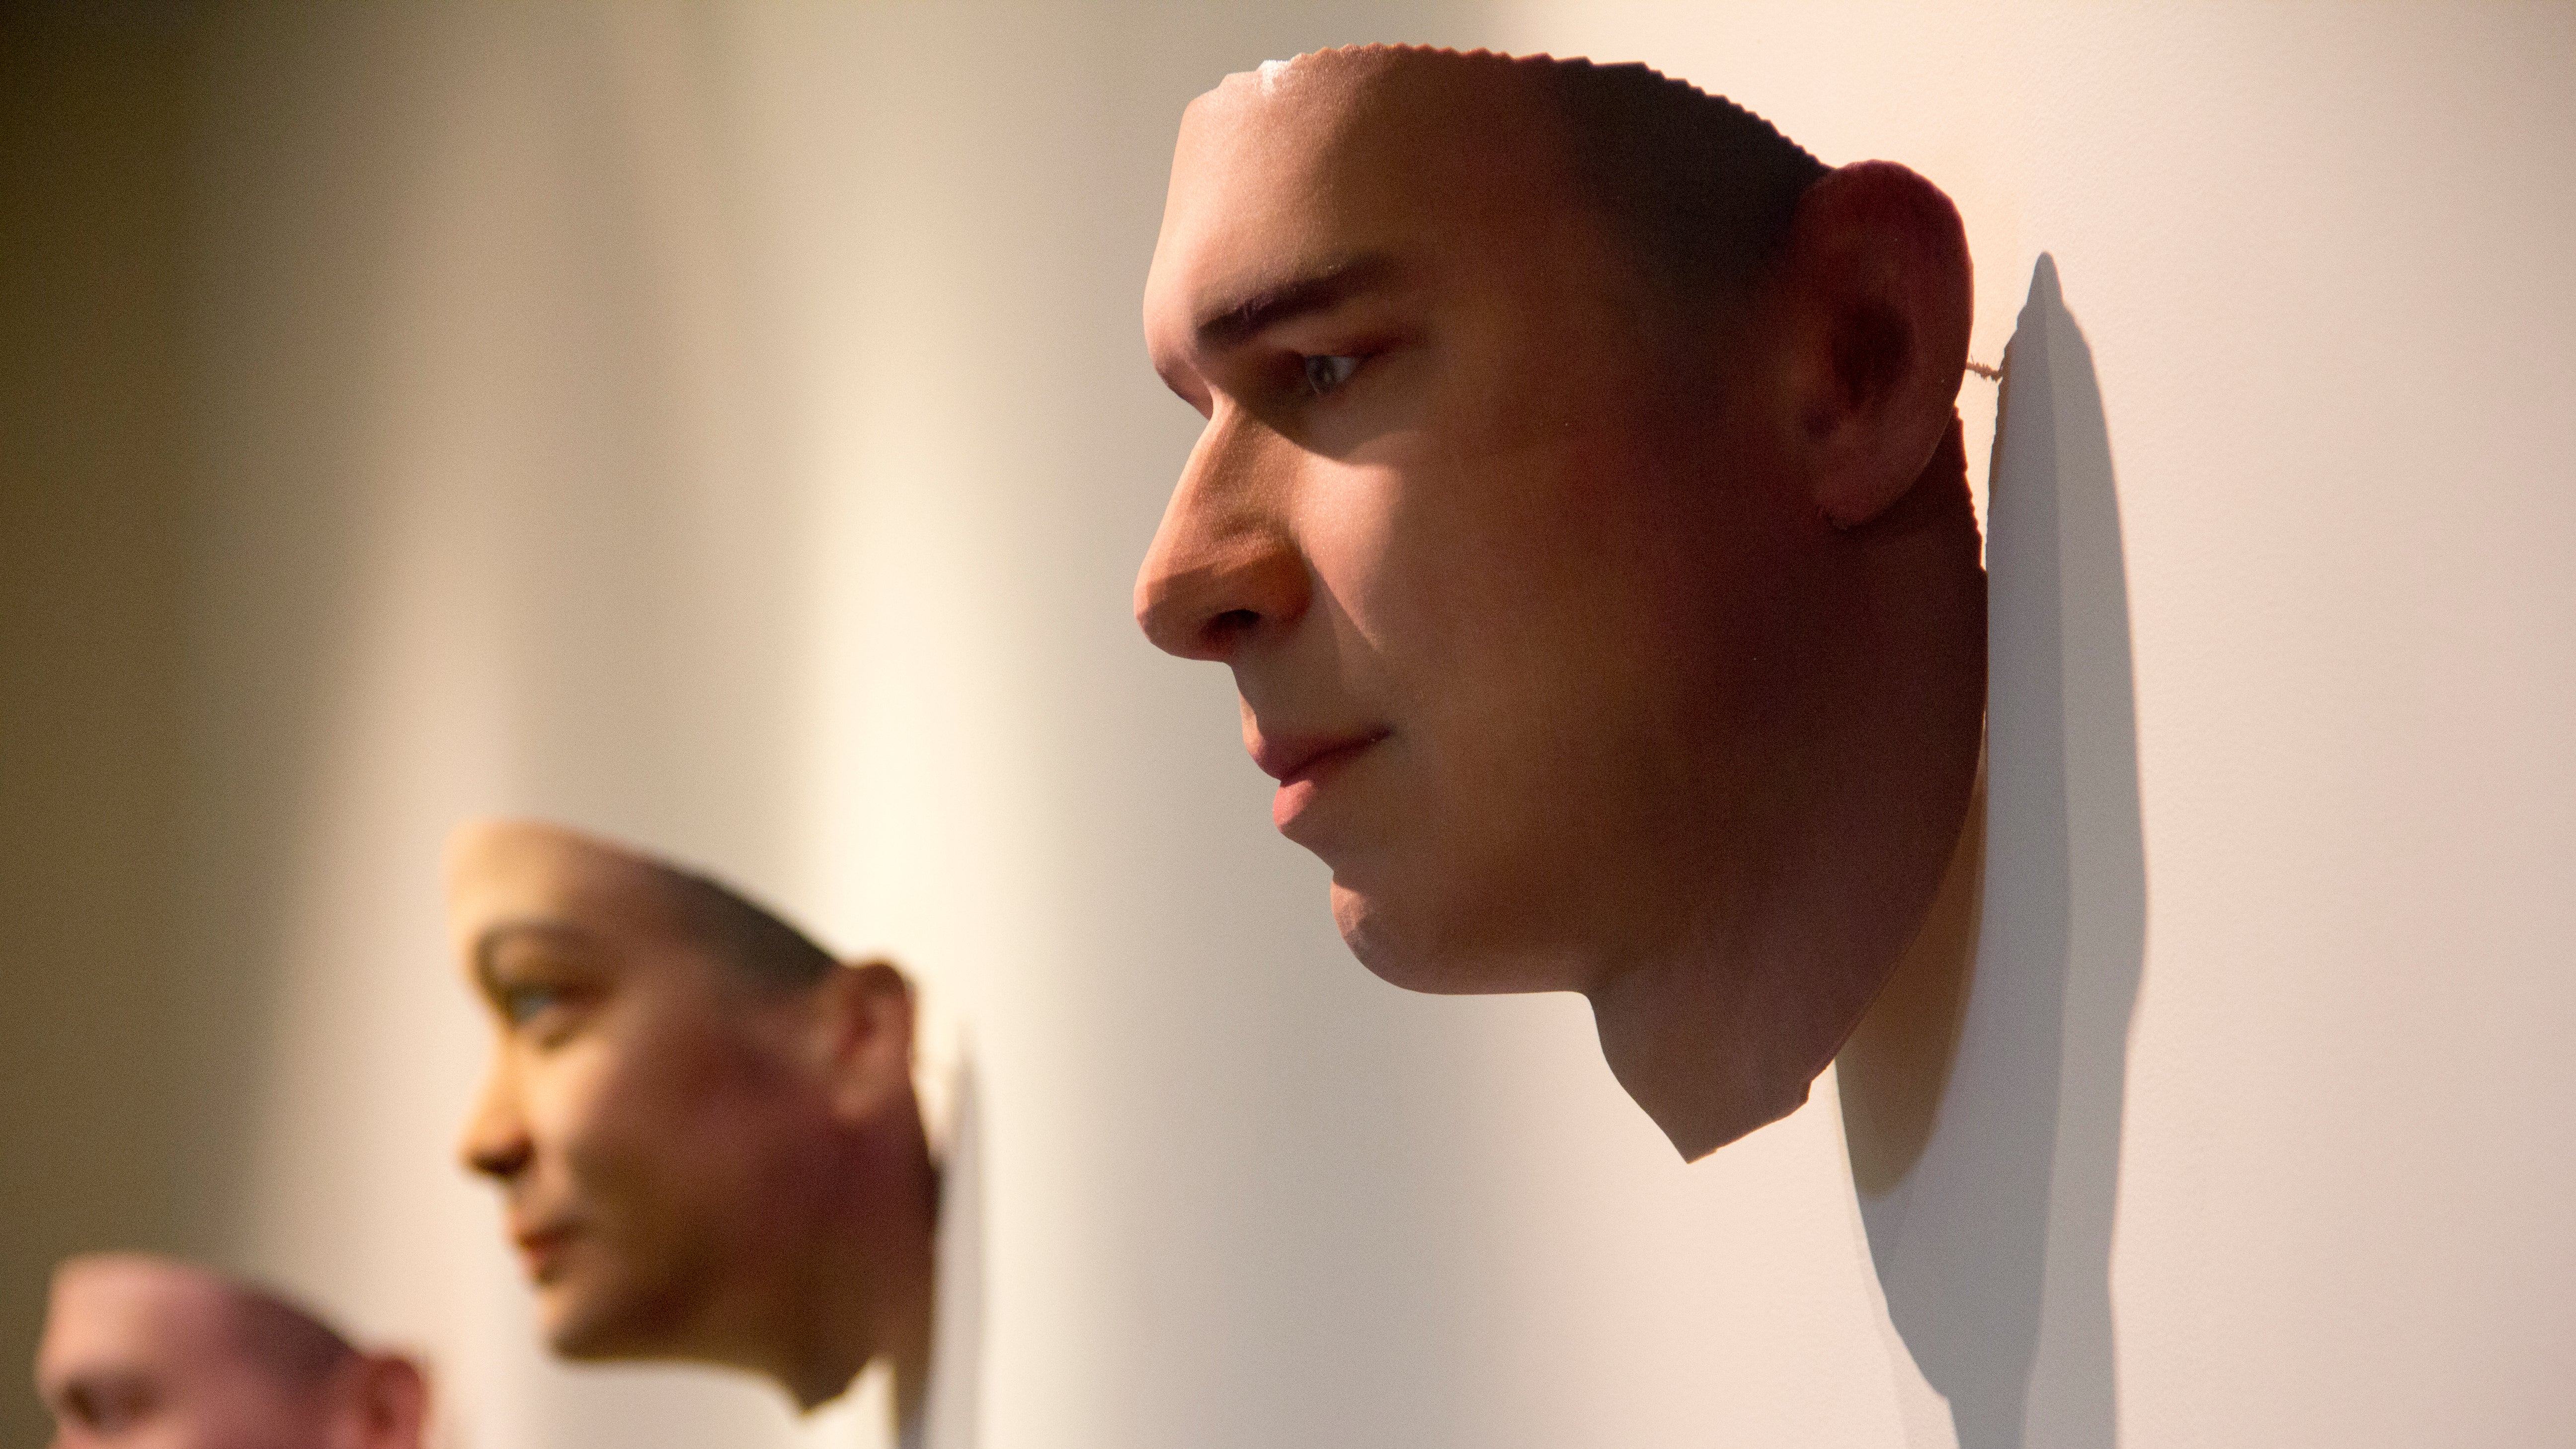 Could A DNA Test Really Predict What You Look Like?